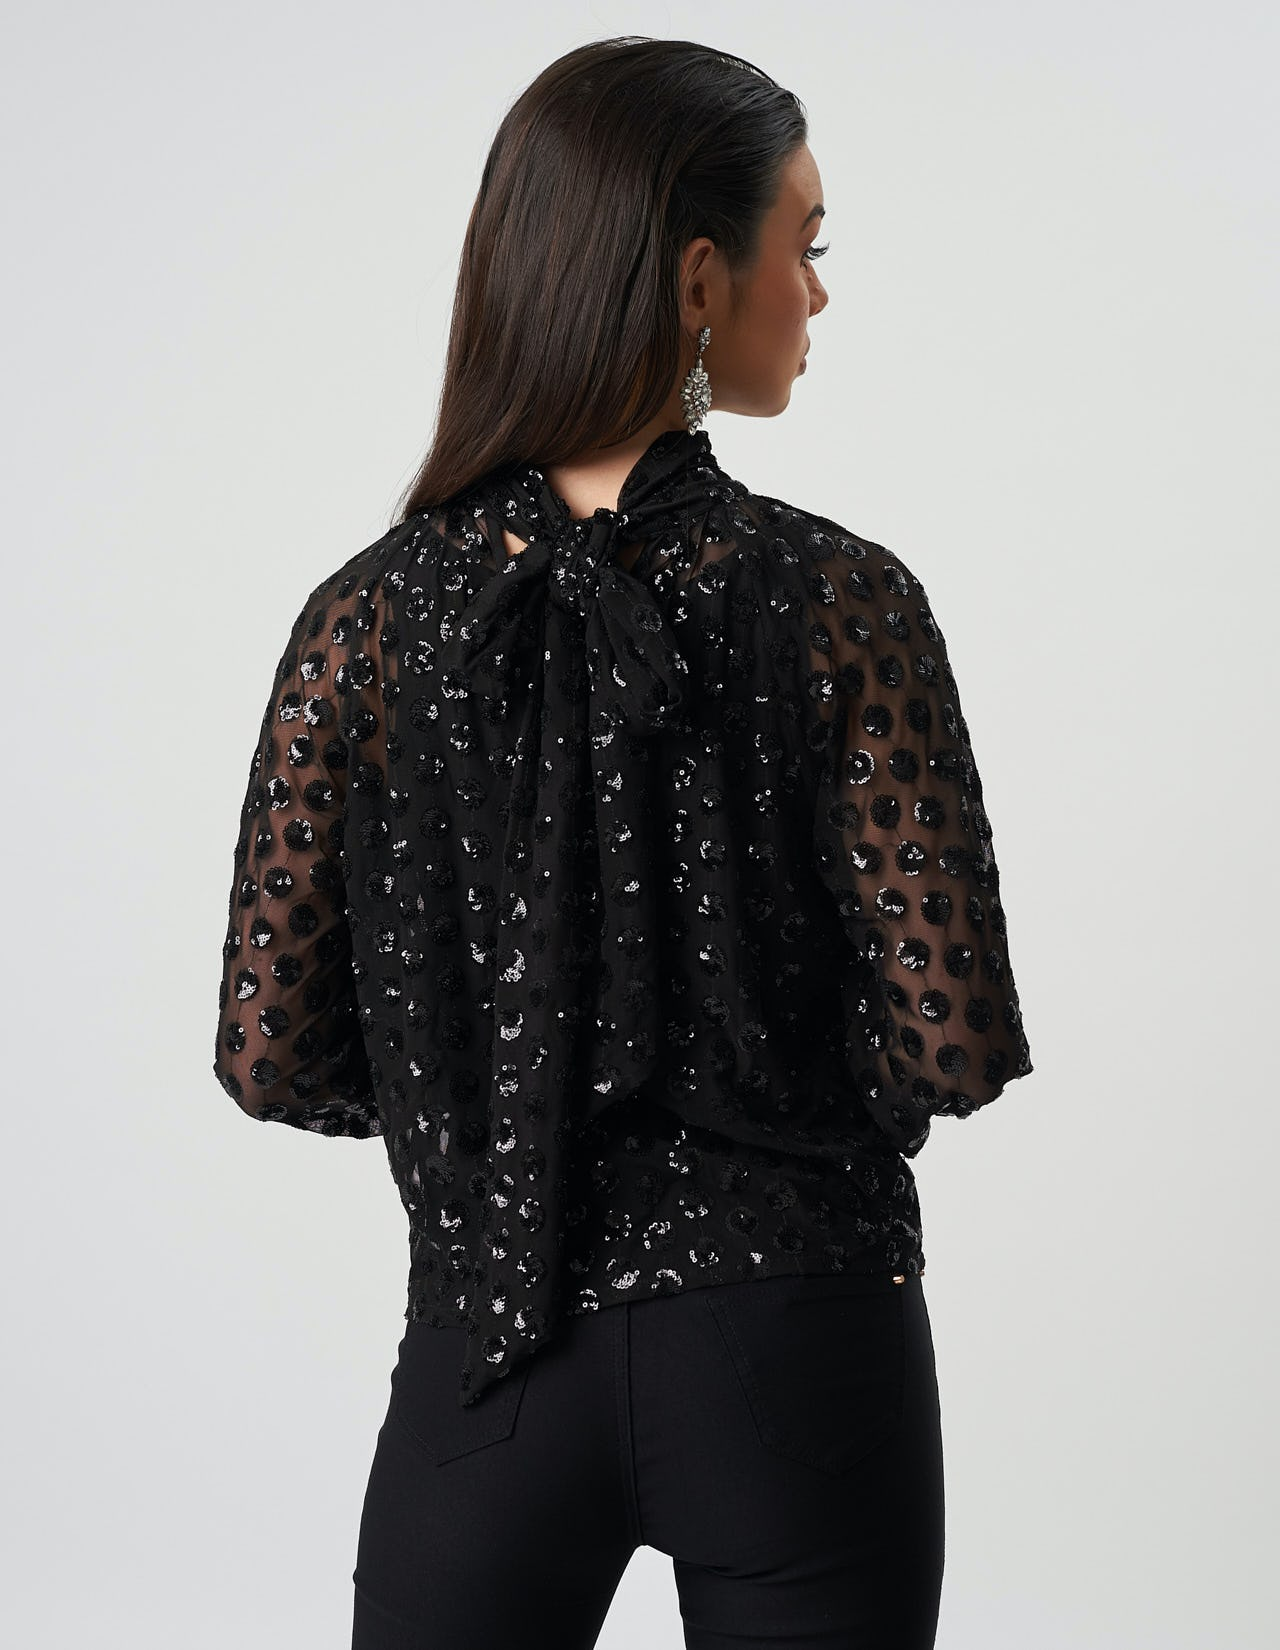 New Next Black Sequin Embroidered Floral Mesh Top Sz UK 8 10 rrp £50